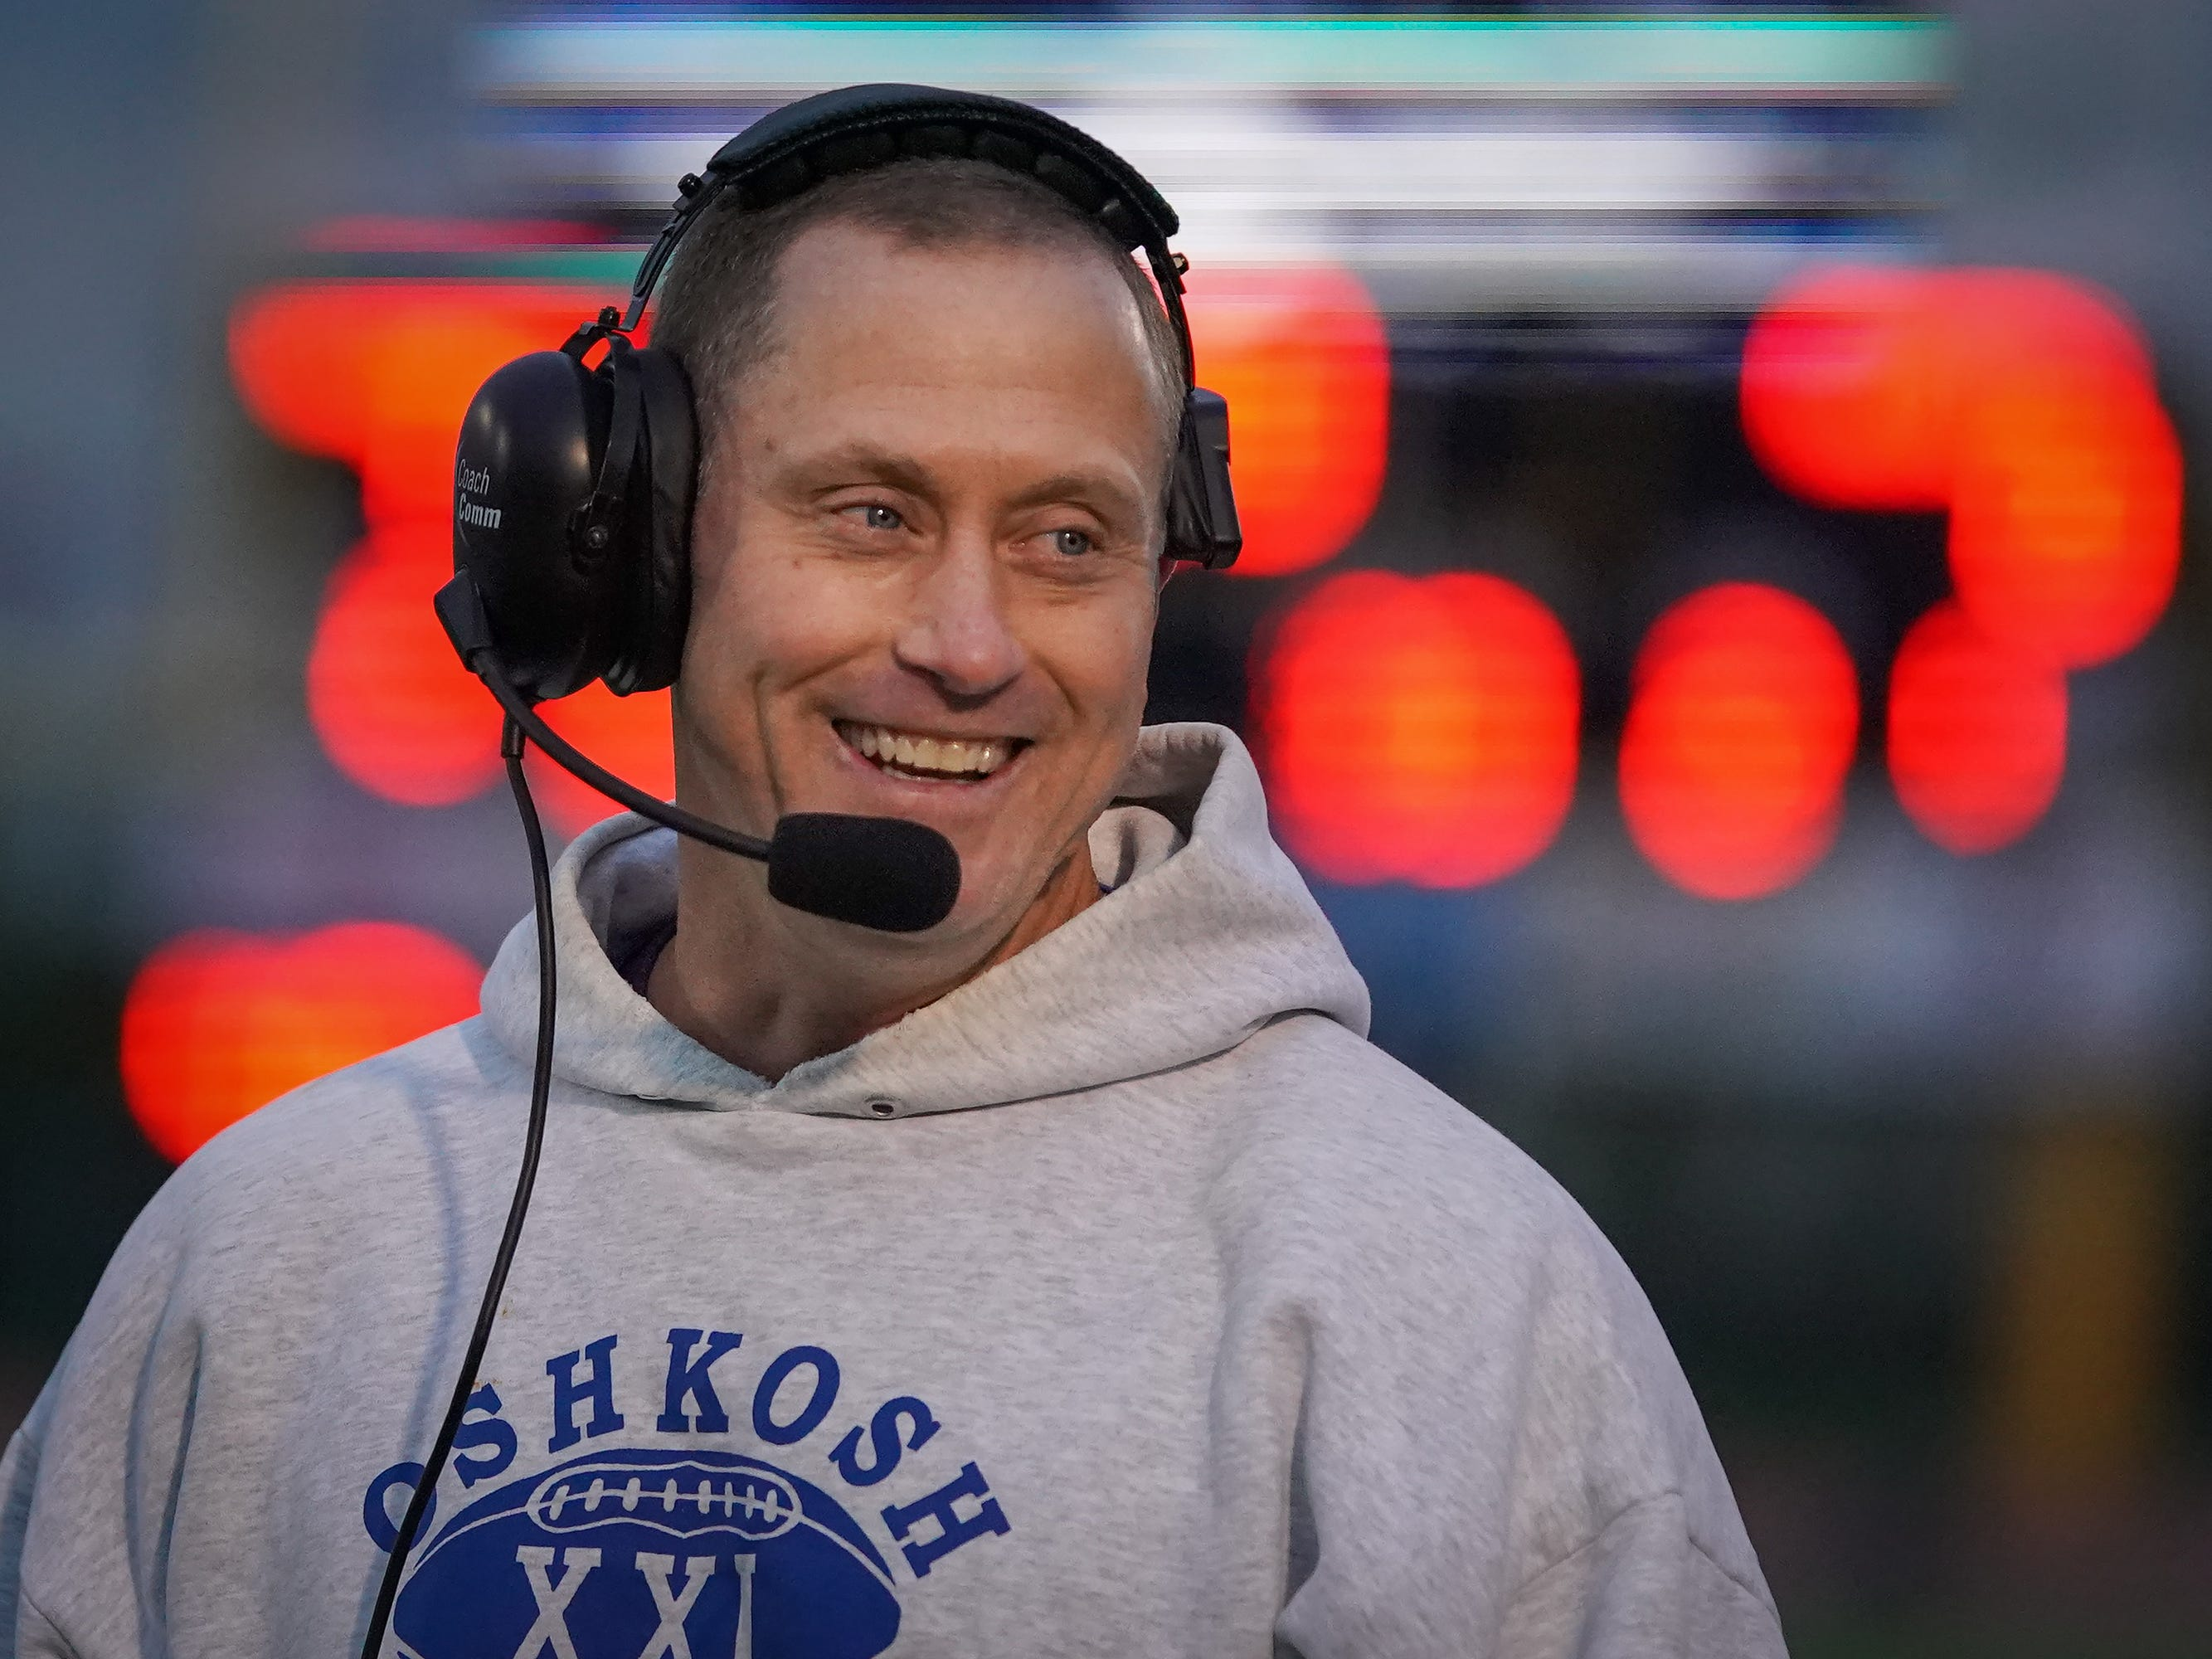 Oshkosh West head coach Ken Levine smiles after the Wildcats score a touchdown. The Oshkosh West Wildcats hosted the Neenah Rockets in an FVA-South conference matchup Friday evening, October 12, 2018 at J. J. Keller Field at Titan Stadium.